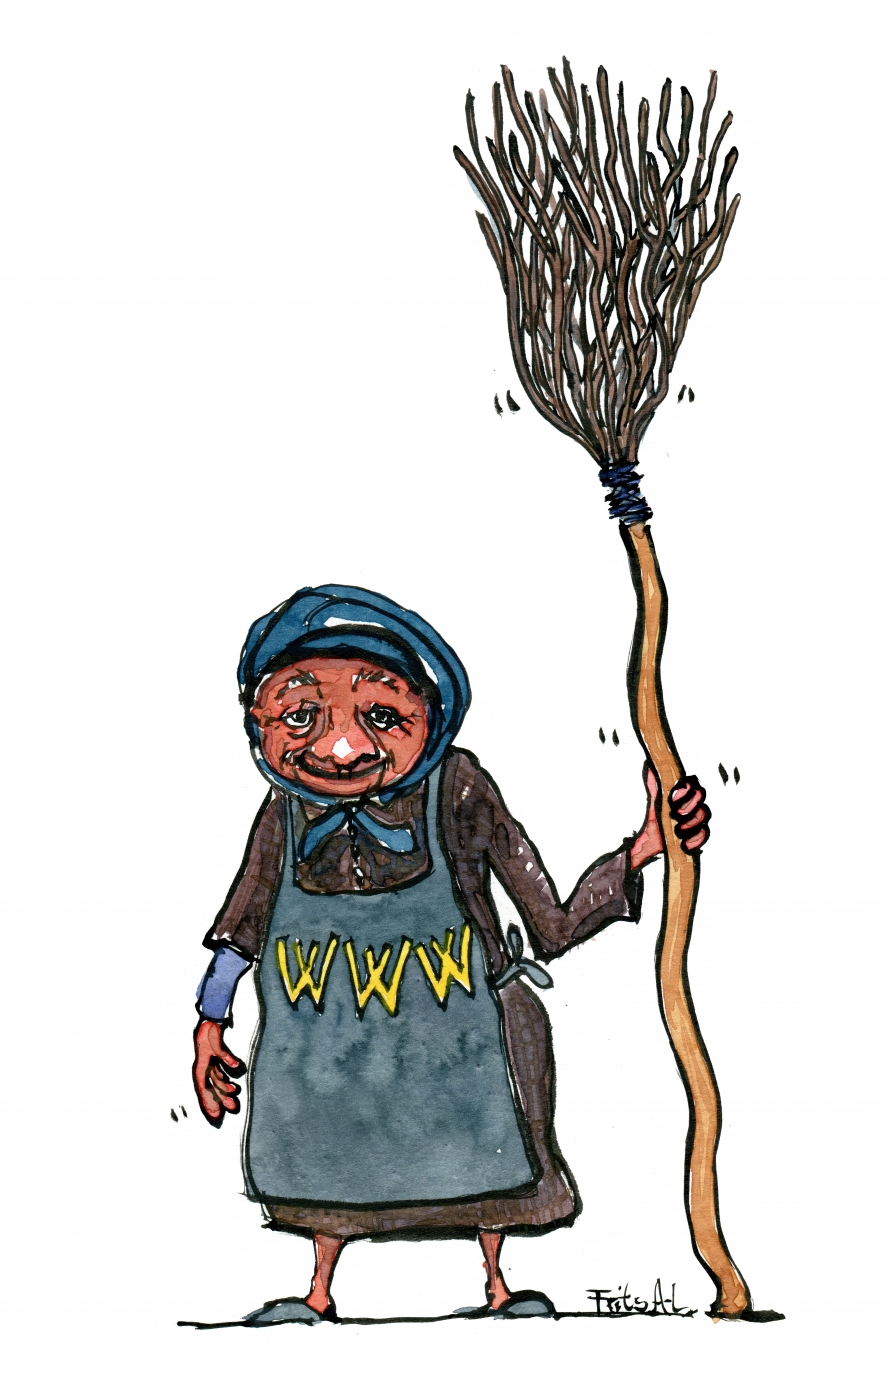 Drawing of an old lady with a broom and www on her apron